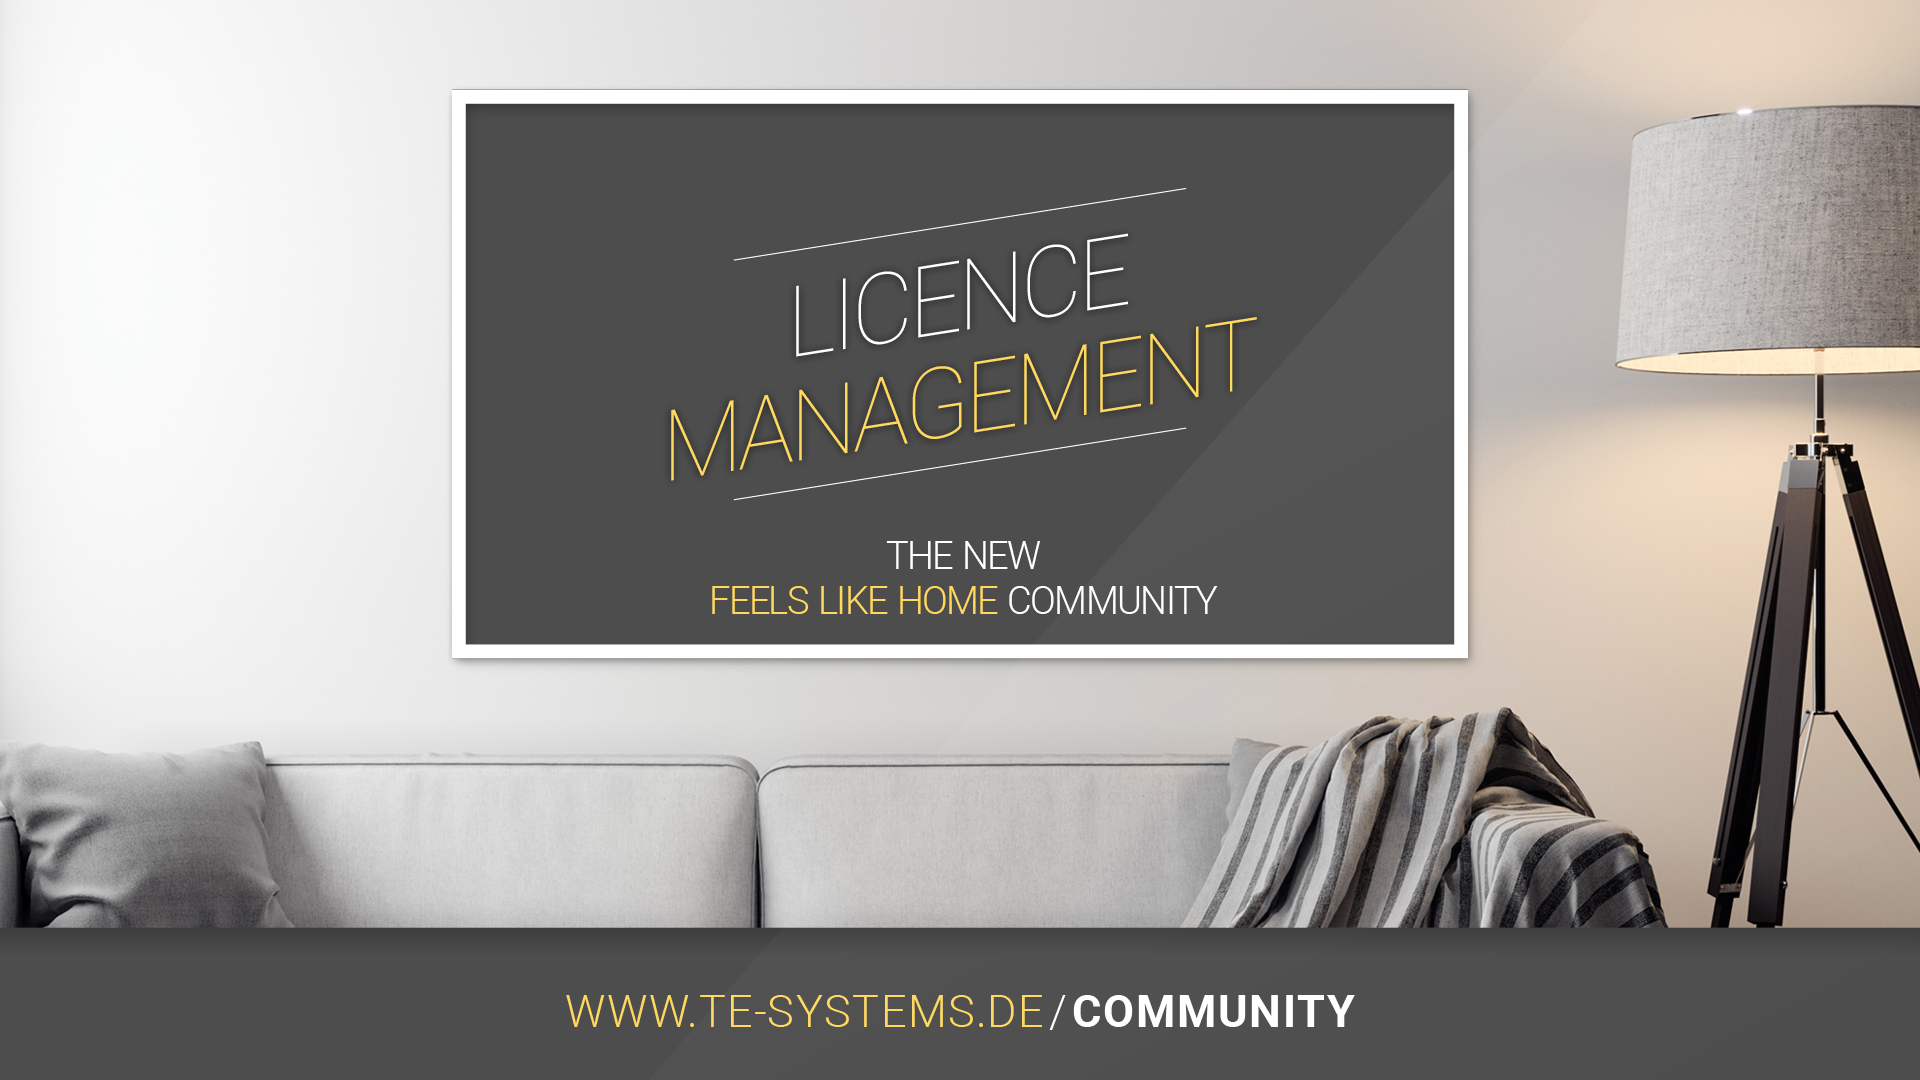 """be excited: licence management with our new """"feels like home community"""" #staytuned"""